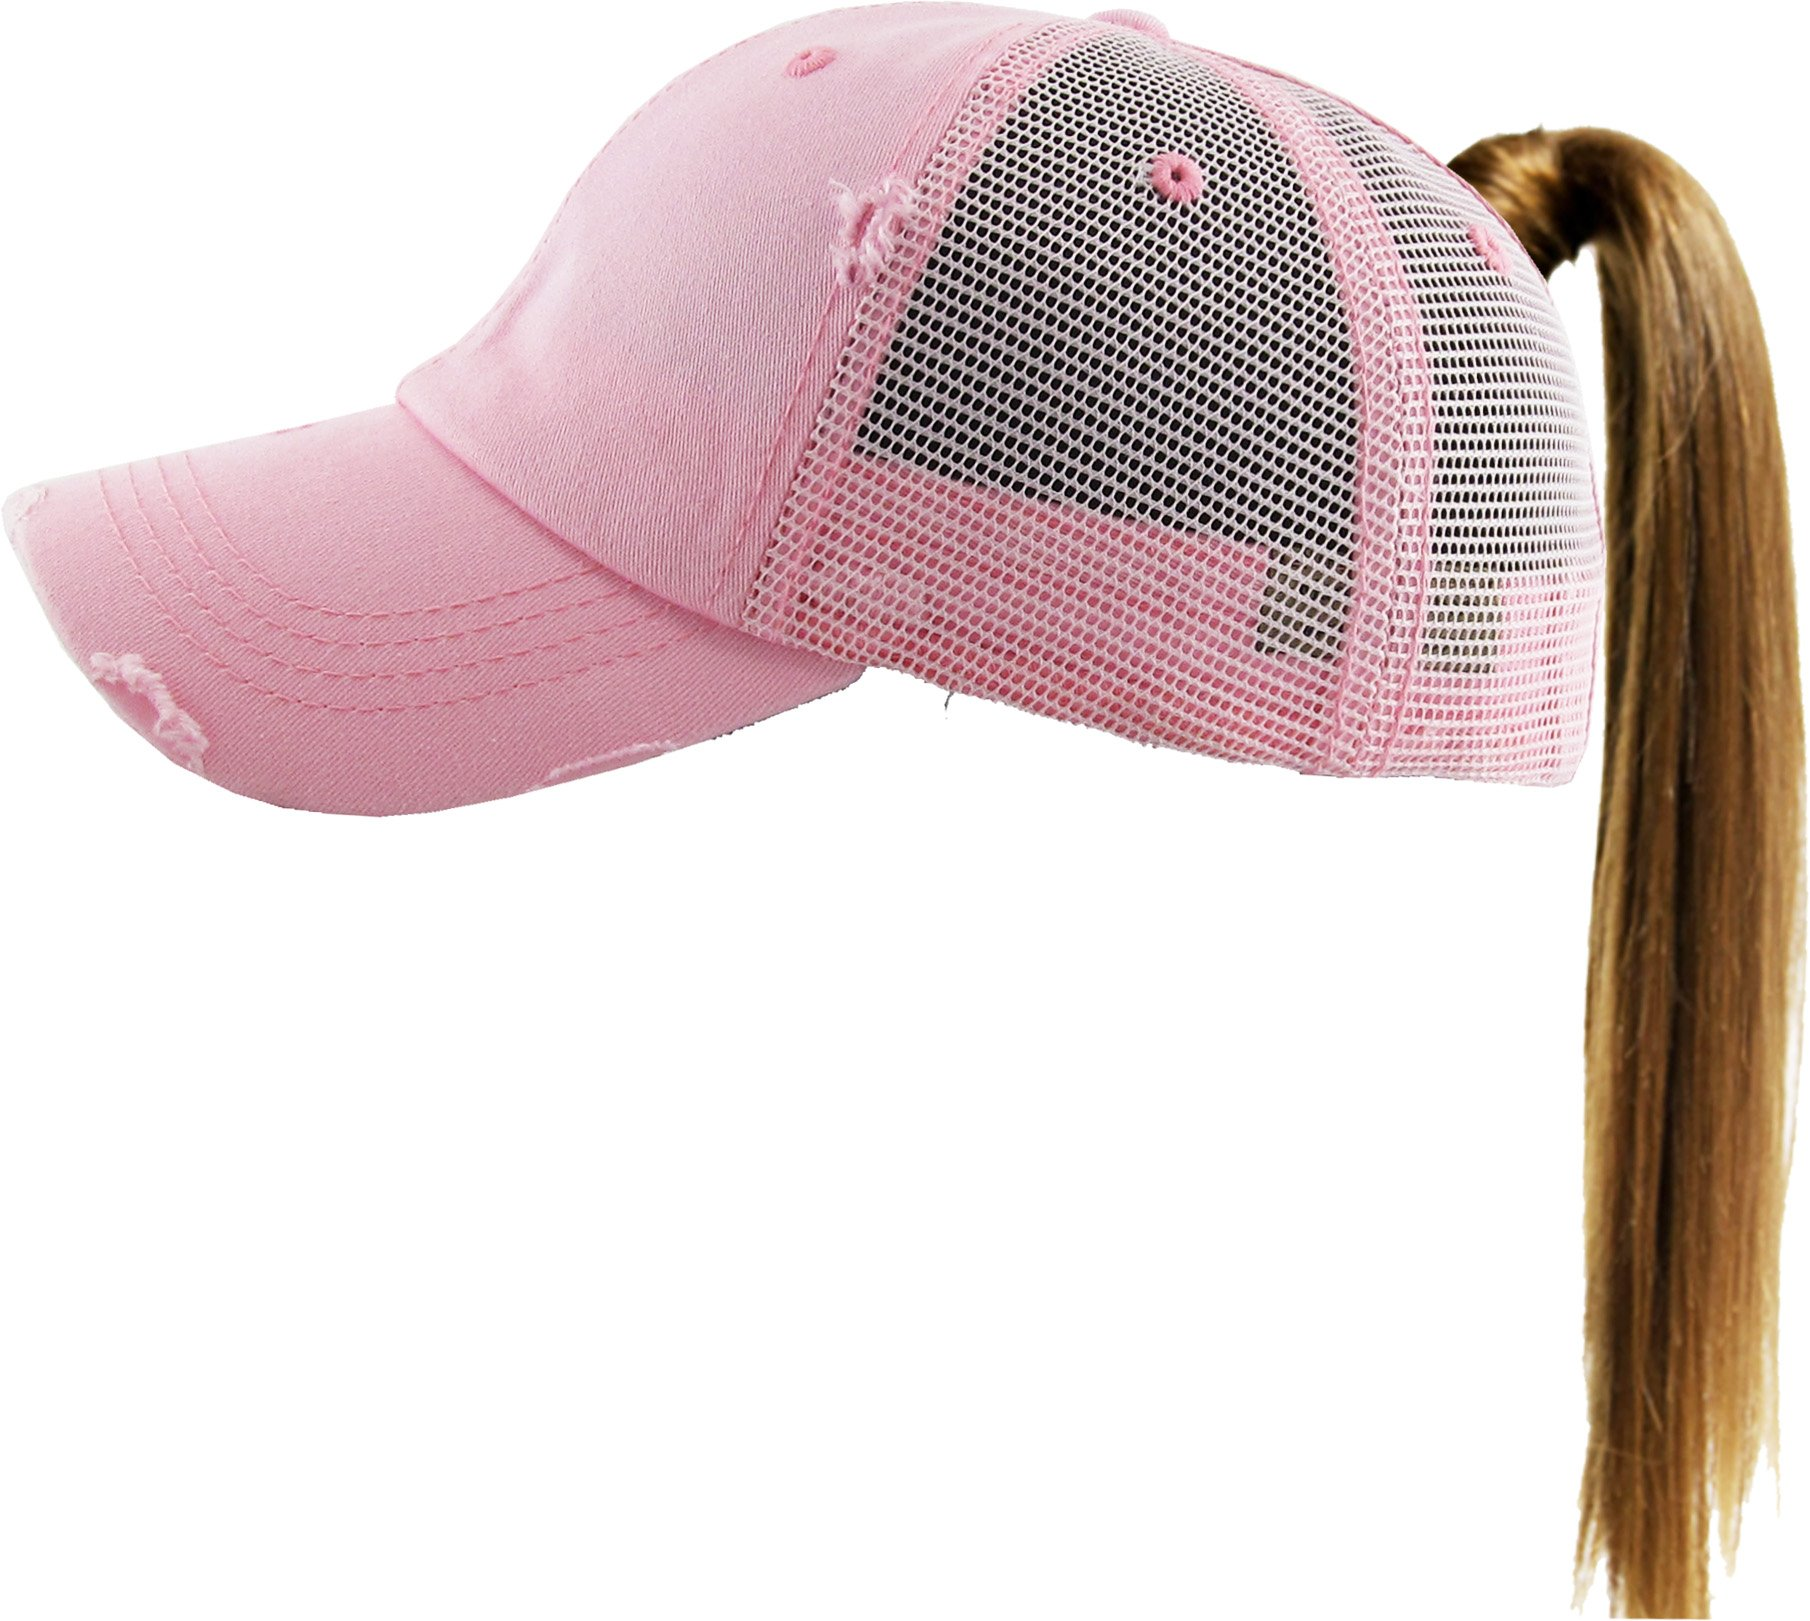 KBETHOS New Glitter Designed Leopard Ponytail Hat Baseball Caps for Women Cotton and Mesh Trucker Better Made Original Tags (Adjustable, (002) Pink)